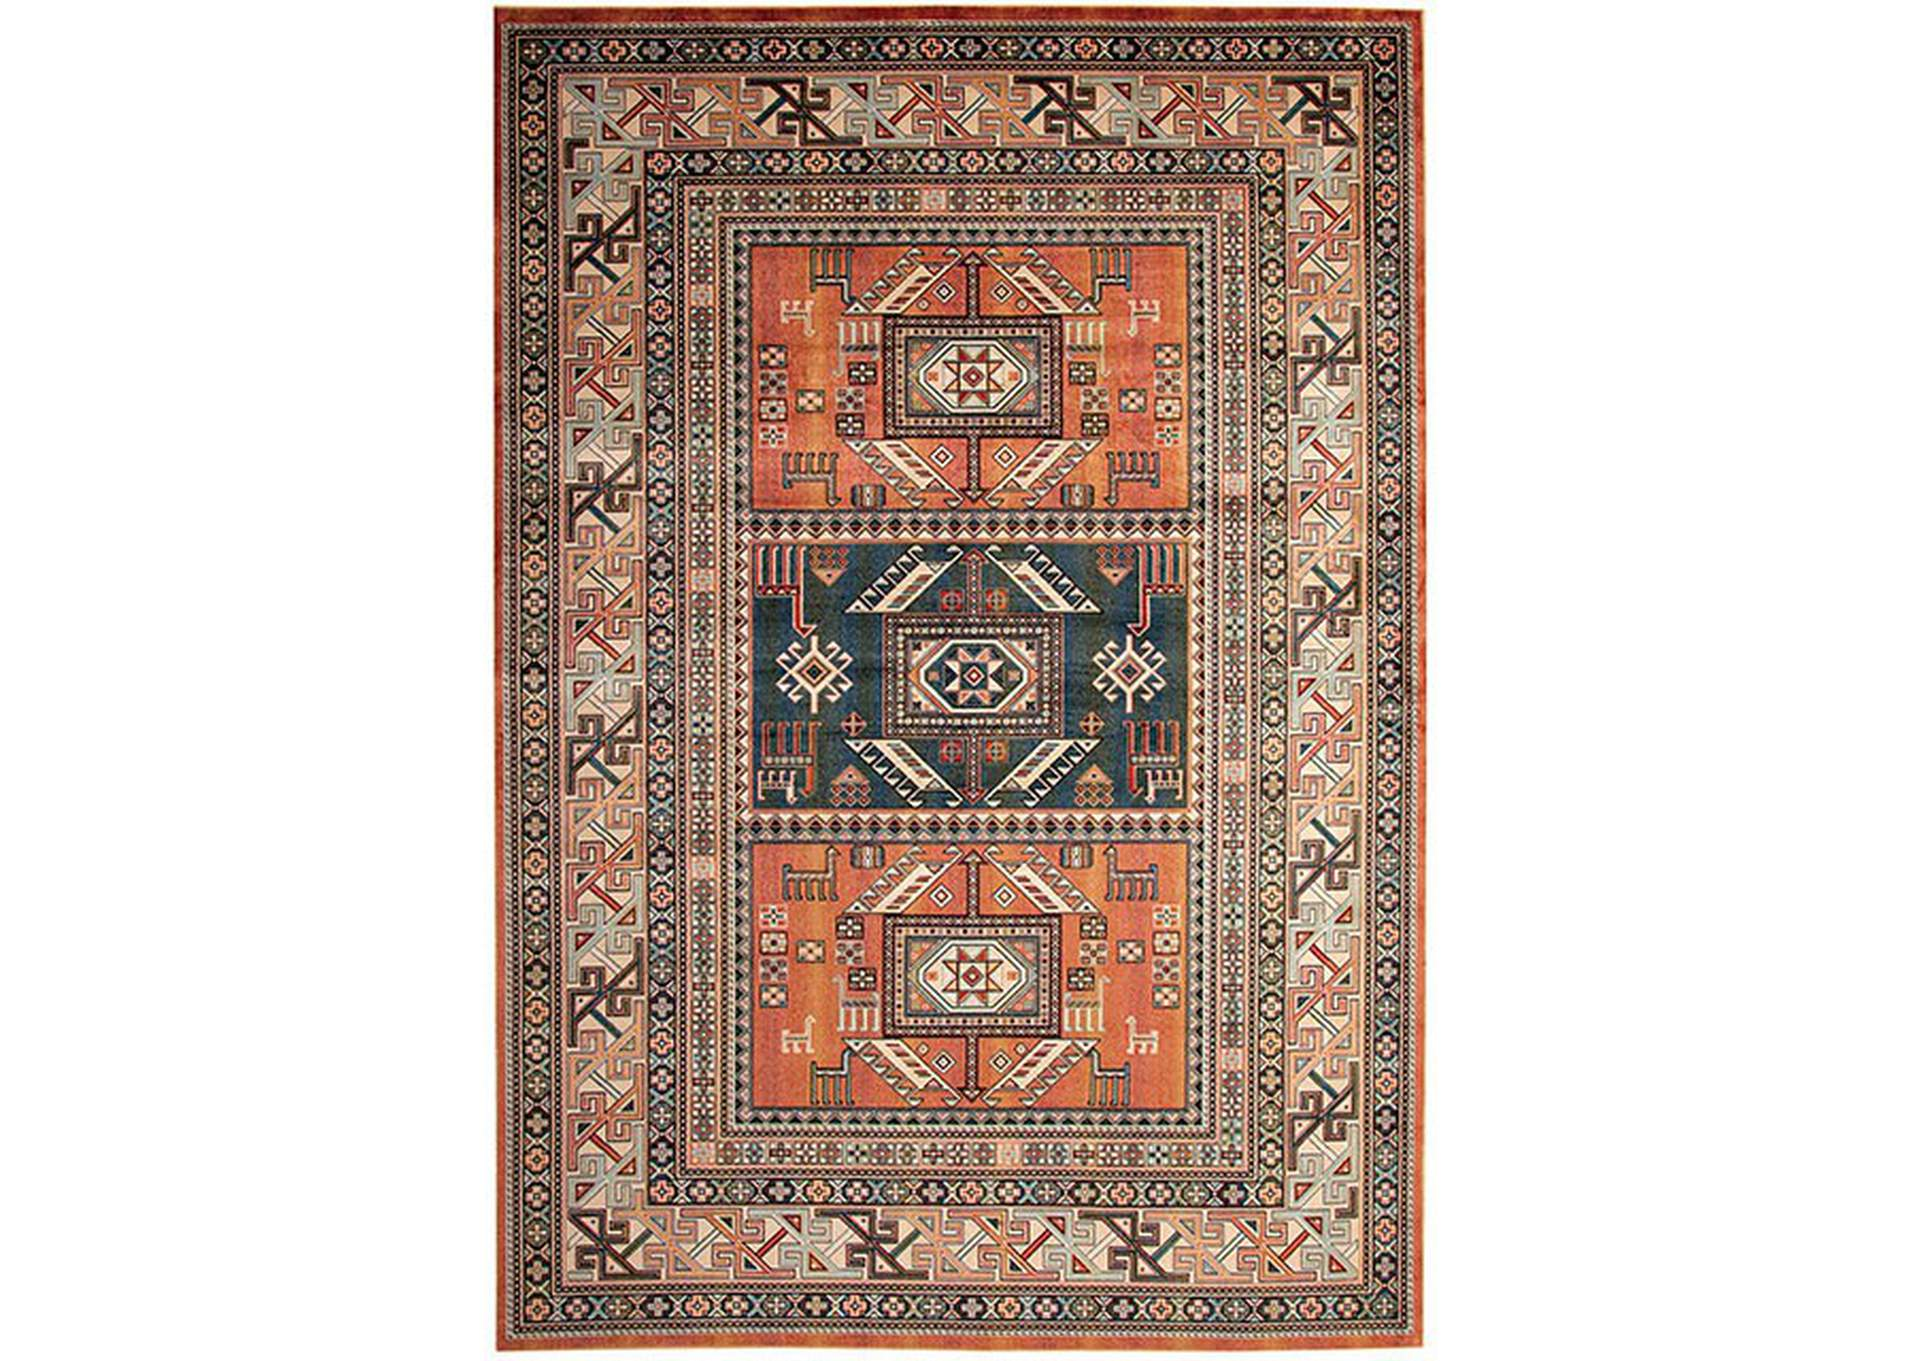 Mortsel Orange Area Rug,Furniture of America